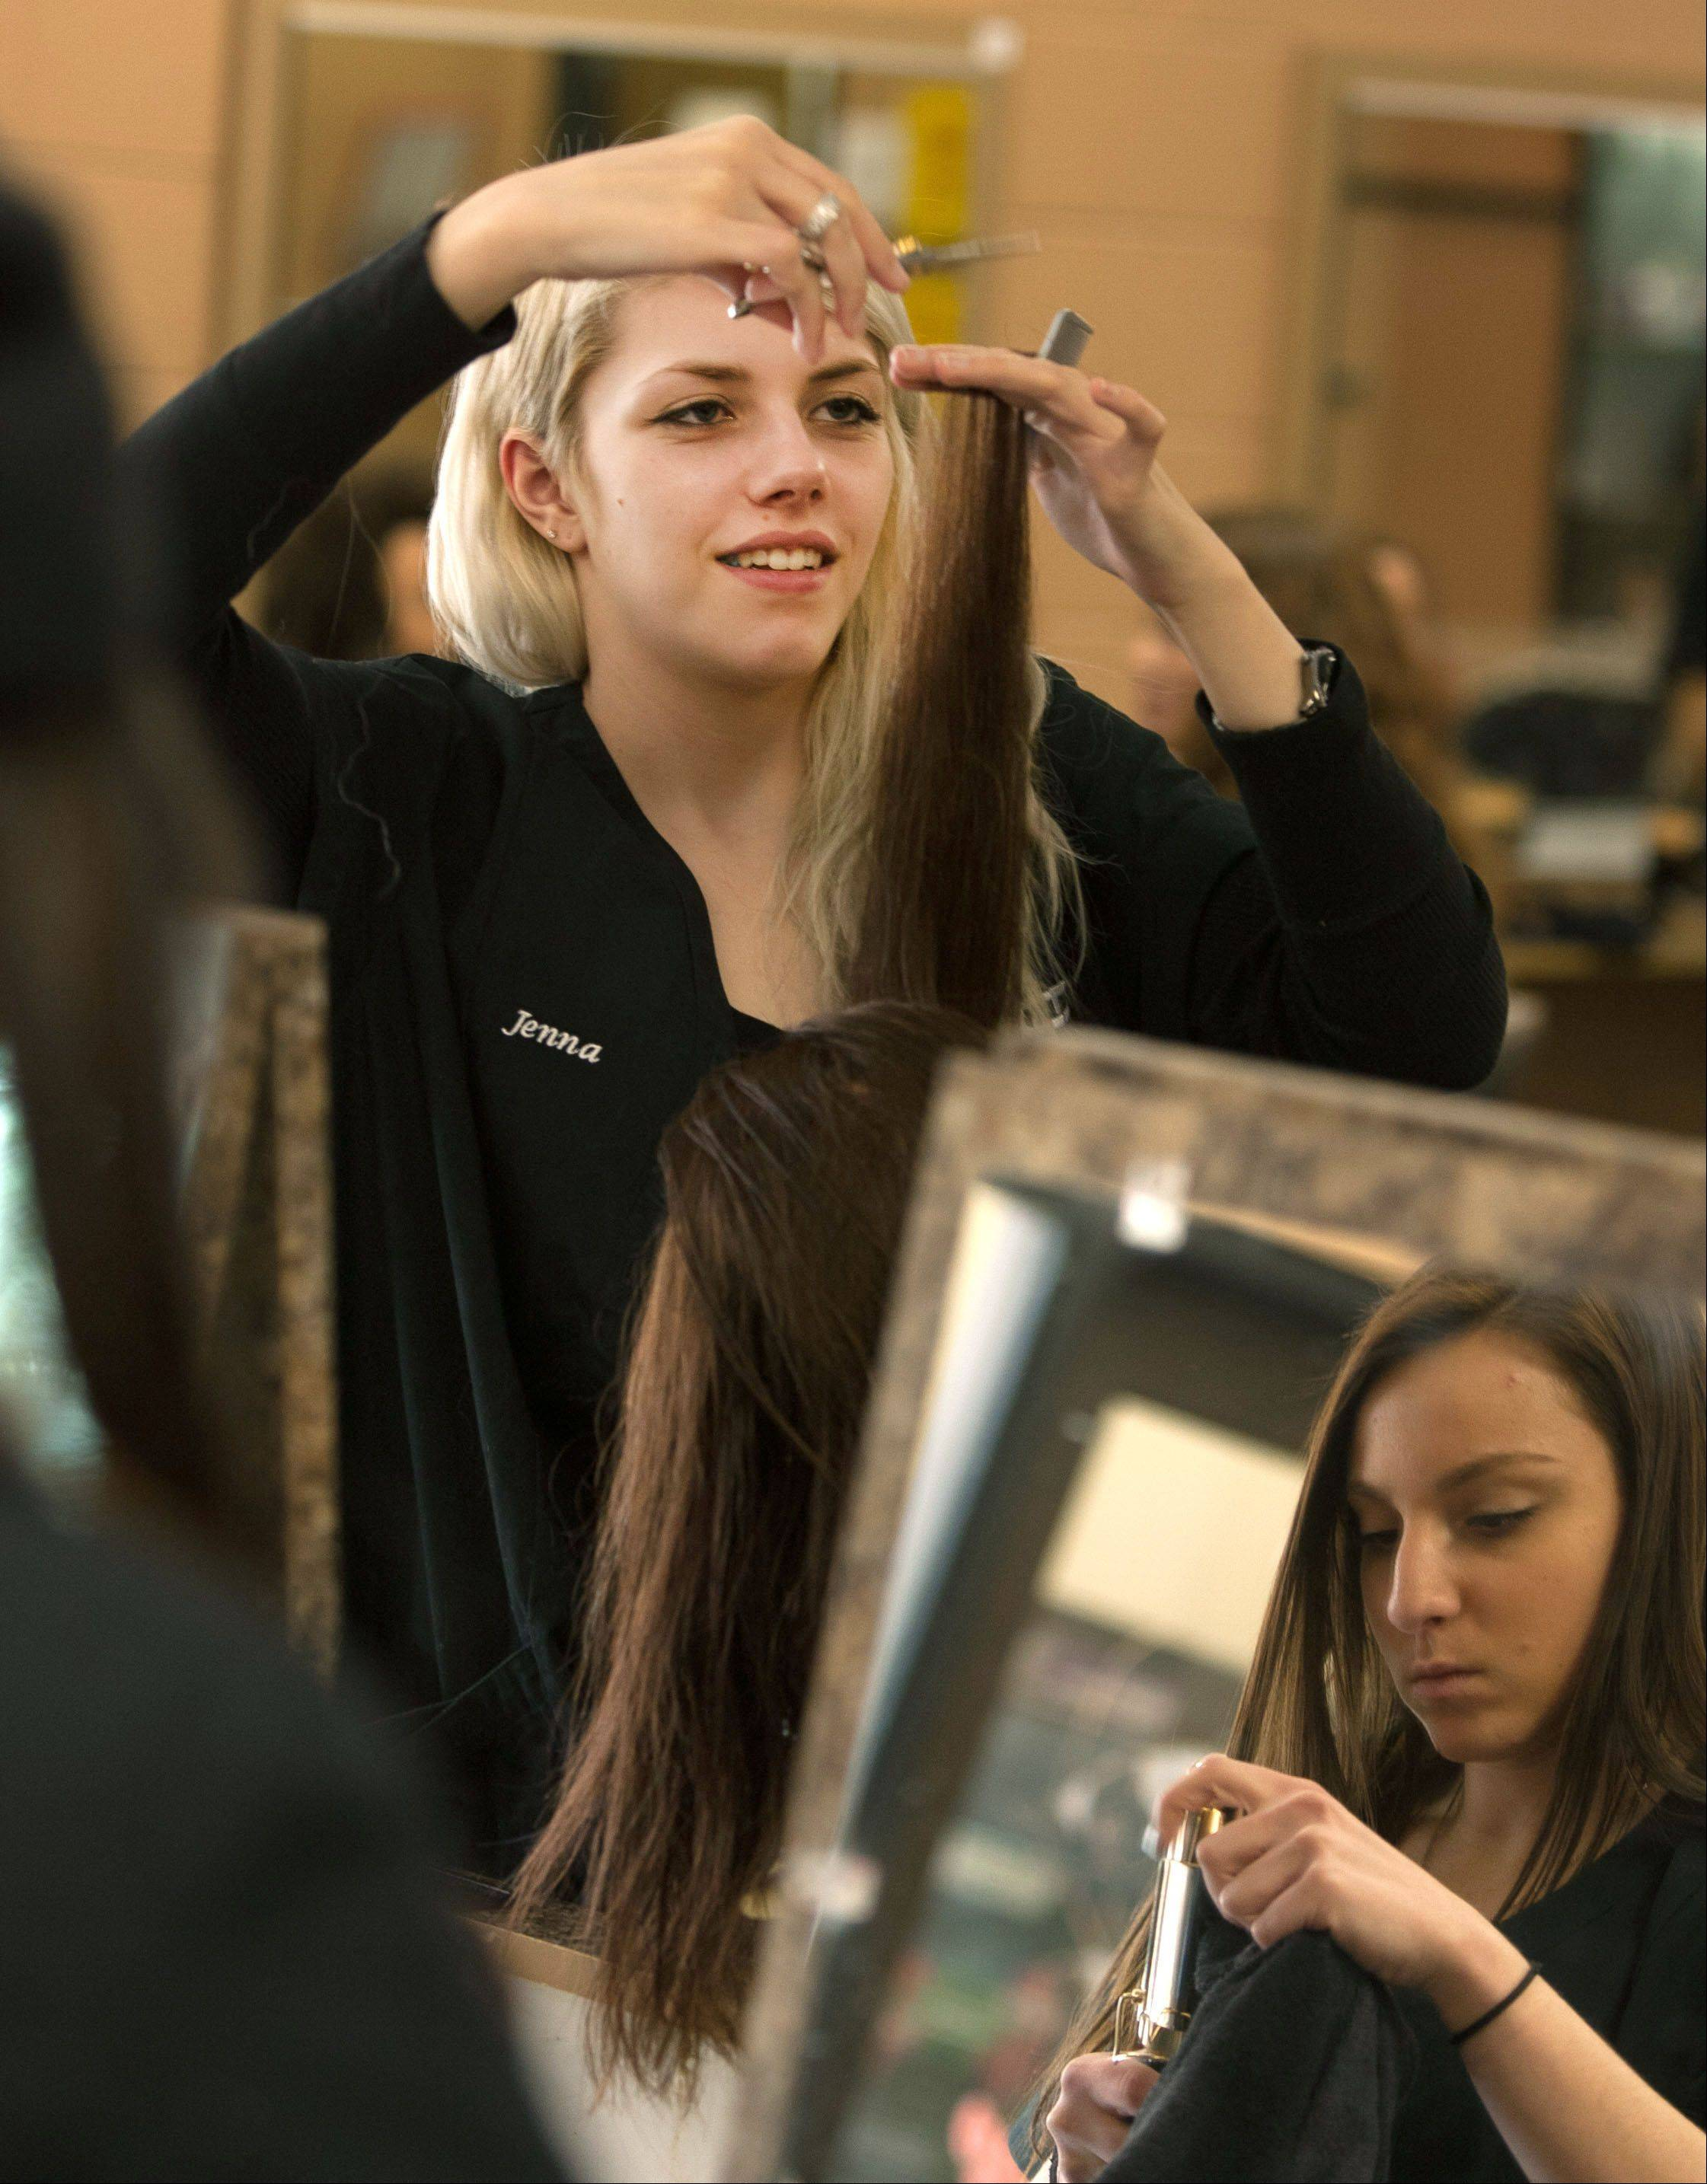 Jenna Strohbusch, left, of Glenbard South High School and Marianna Oddo of Glenbard North High School work on hair in a cosmetology class at the Technology Center of DuPage.